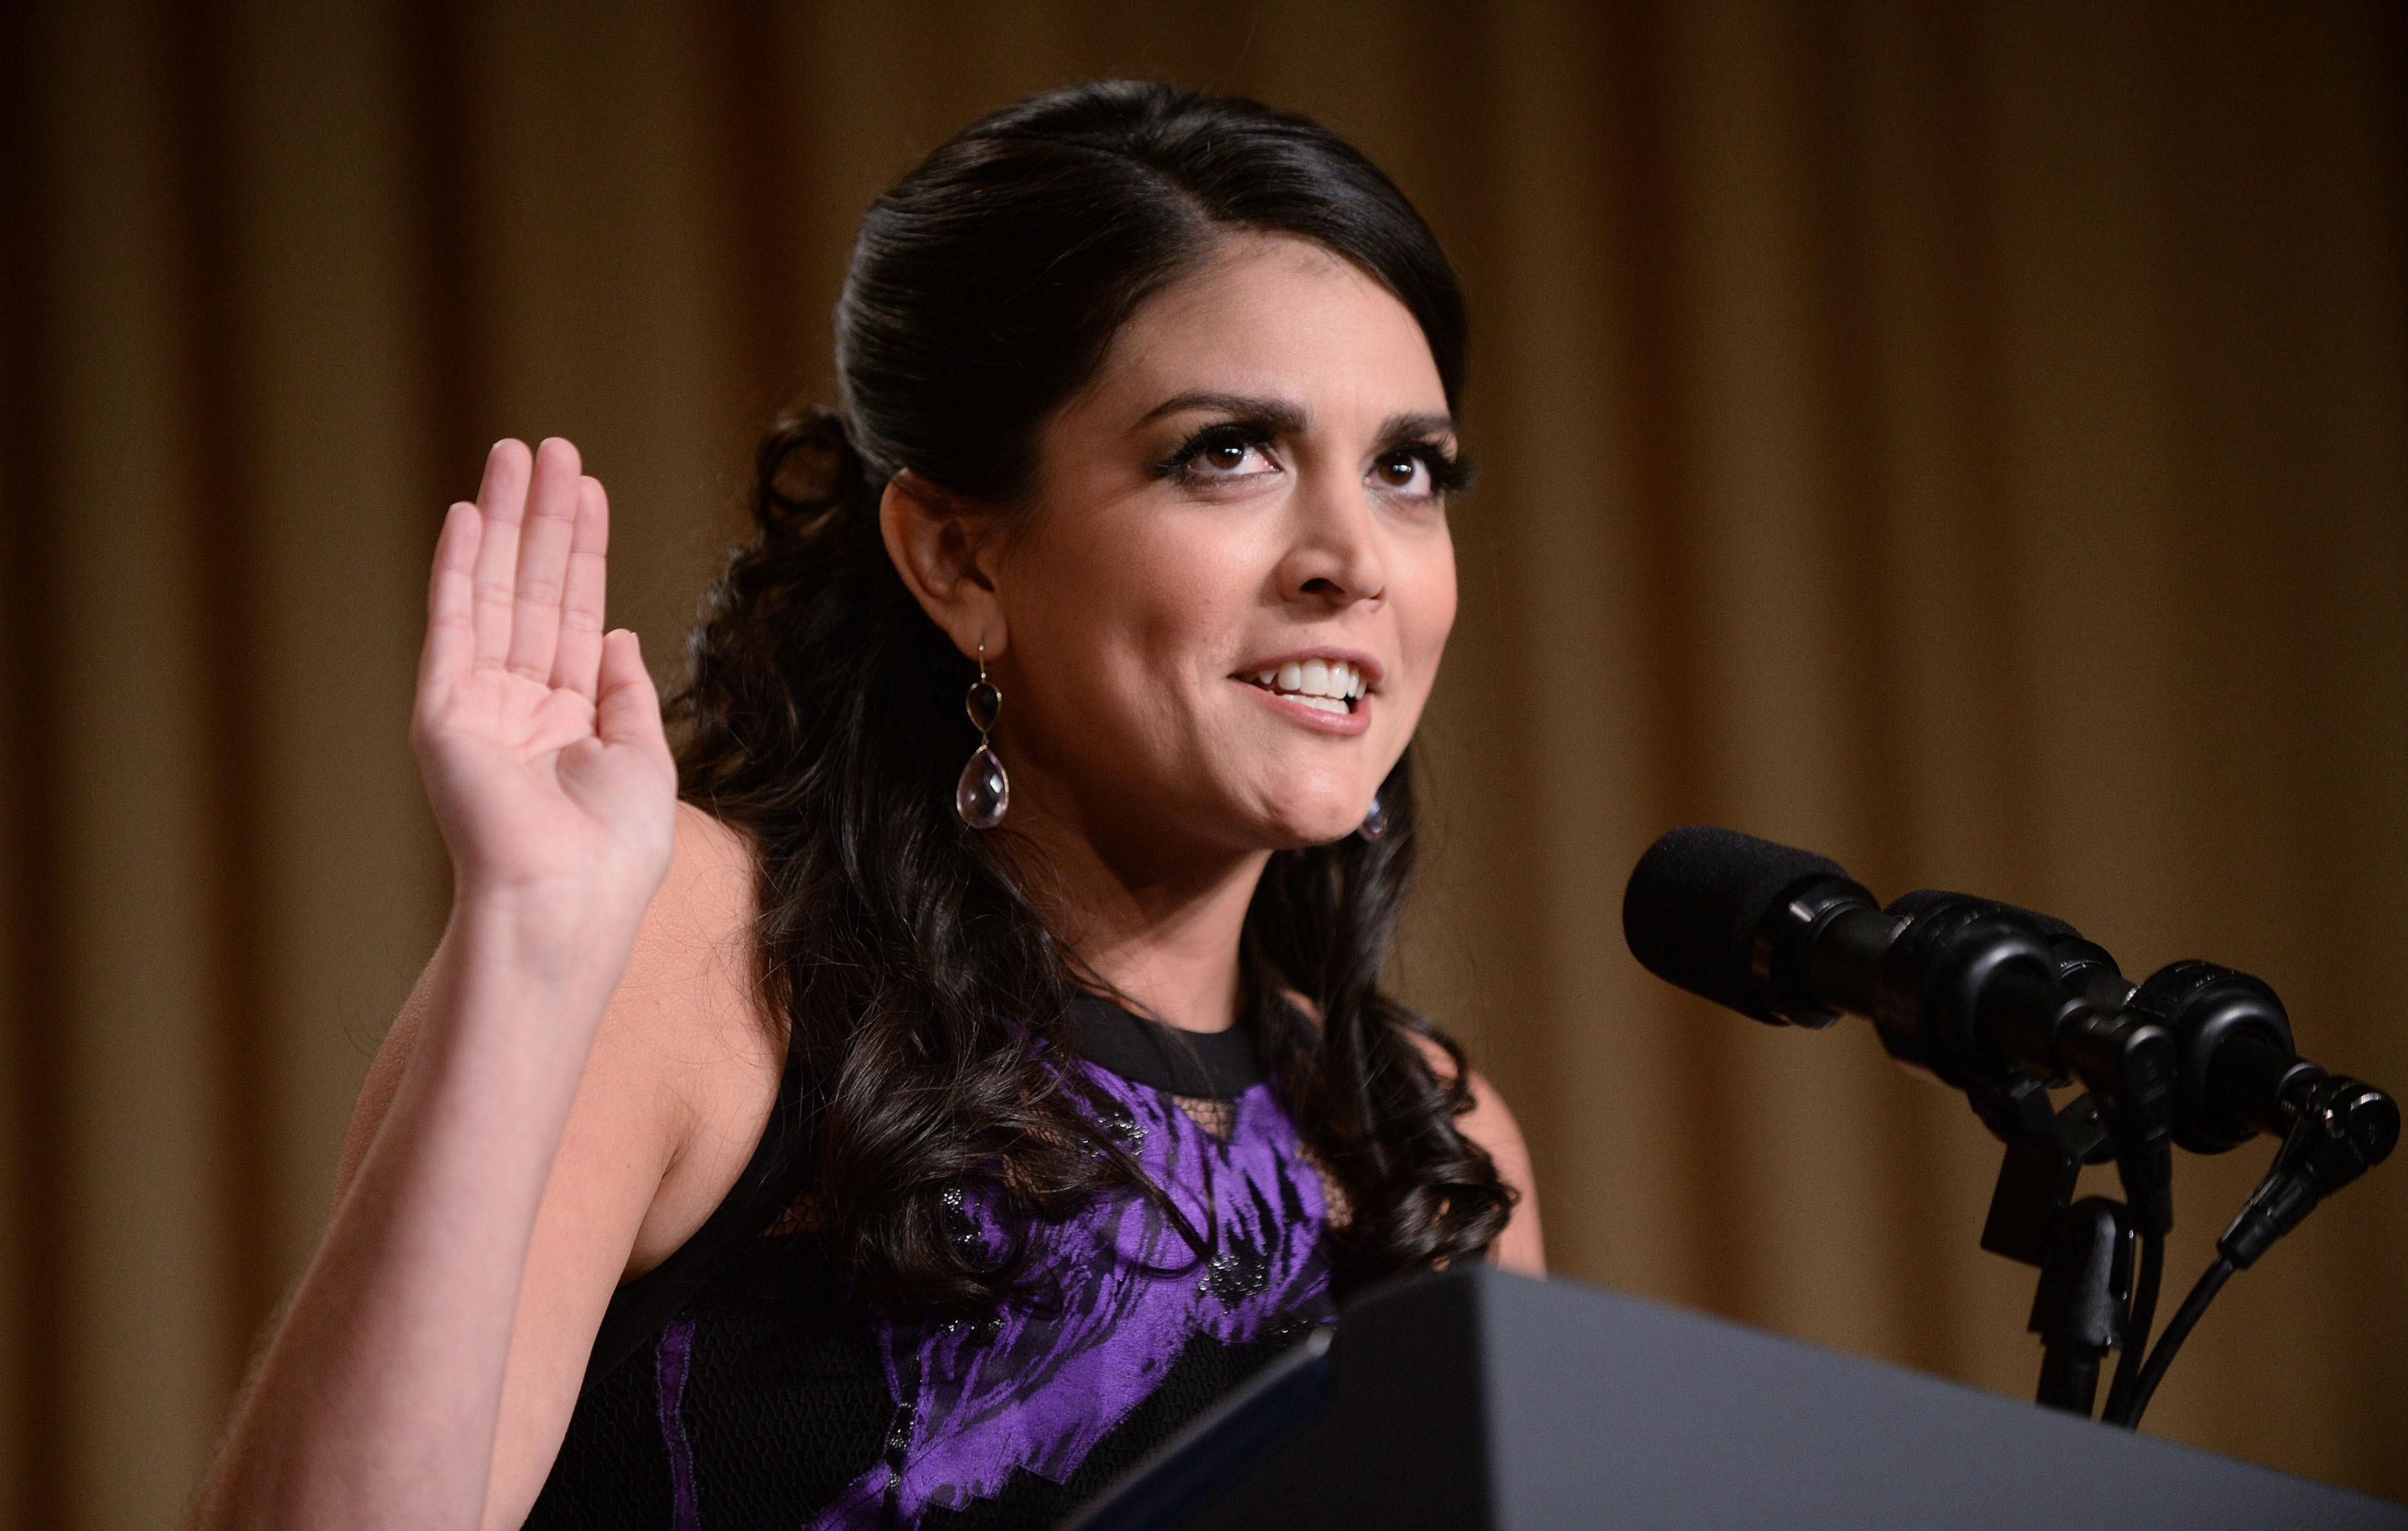 'SNL's Cecily Strong Asks Media Not to Talk About Hillary Clinton's Appearance